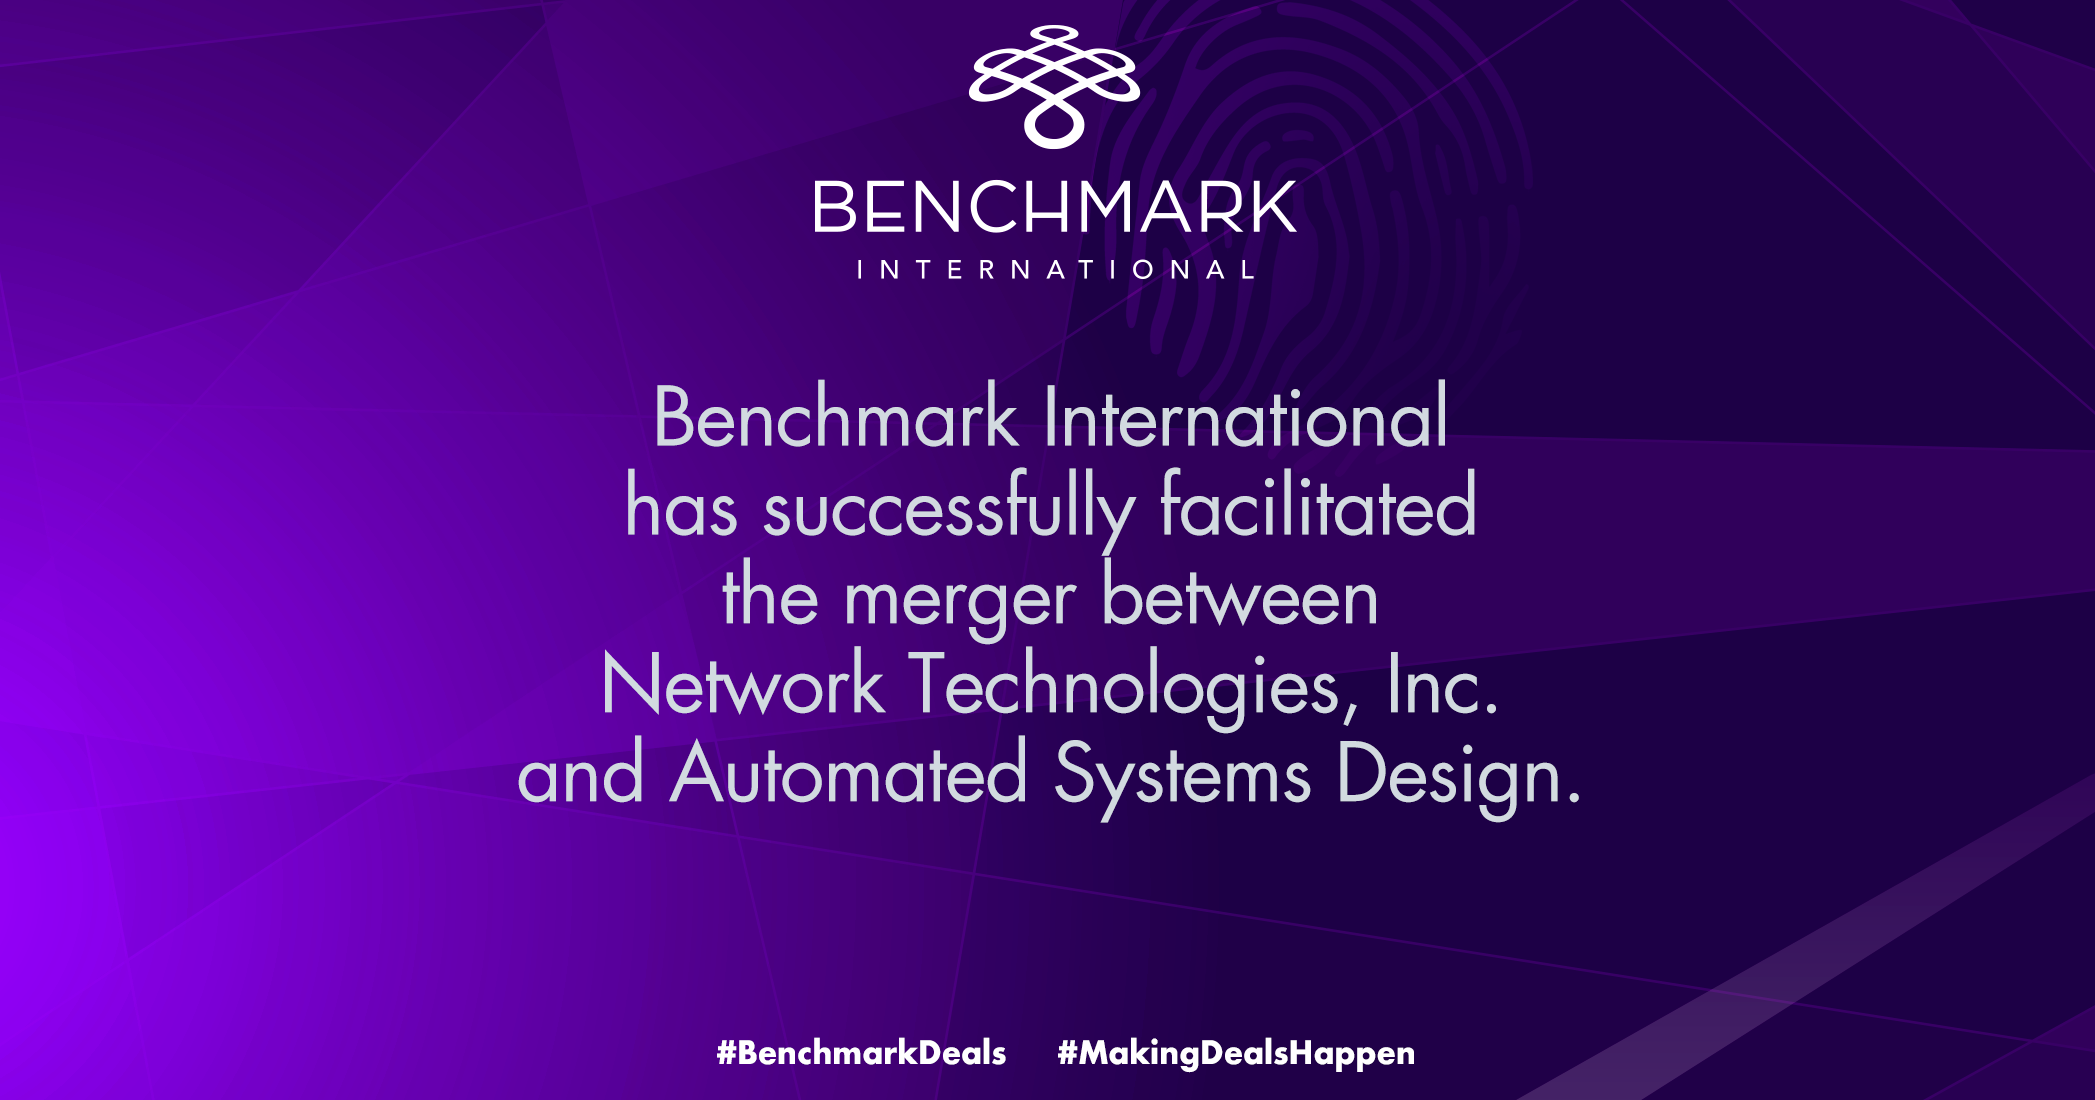 Benchmark International has successfully facilitated the merger between Network Technologies, Inc. and Automated Systems Design.